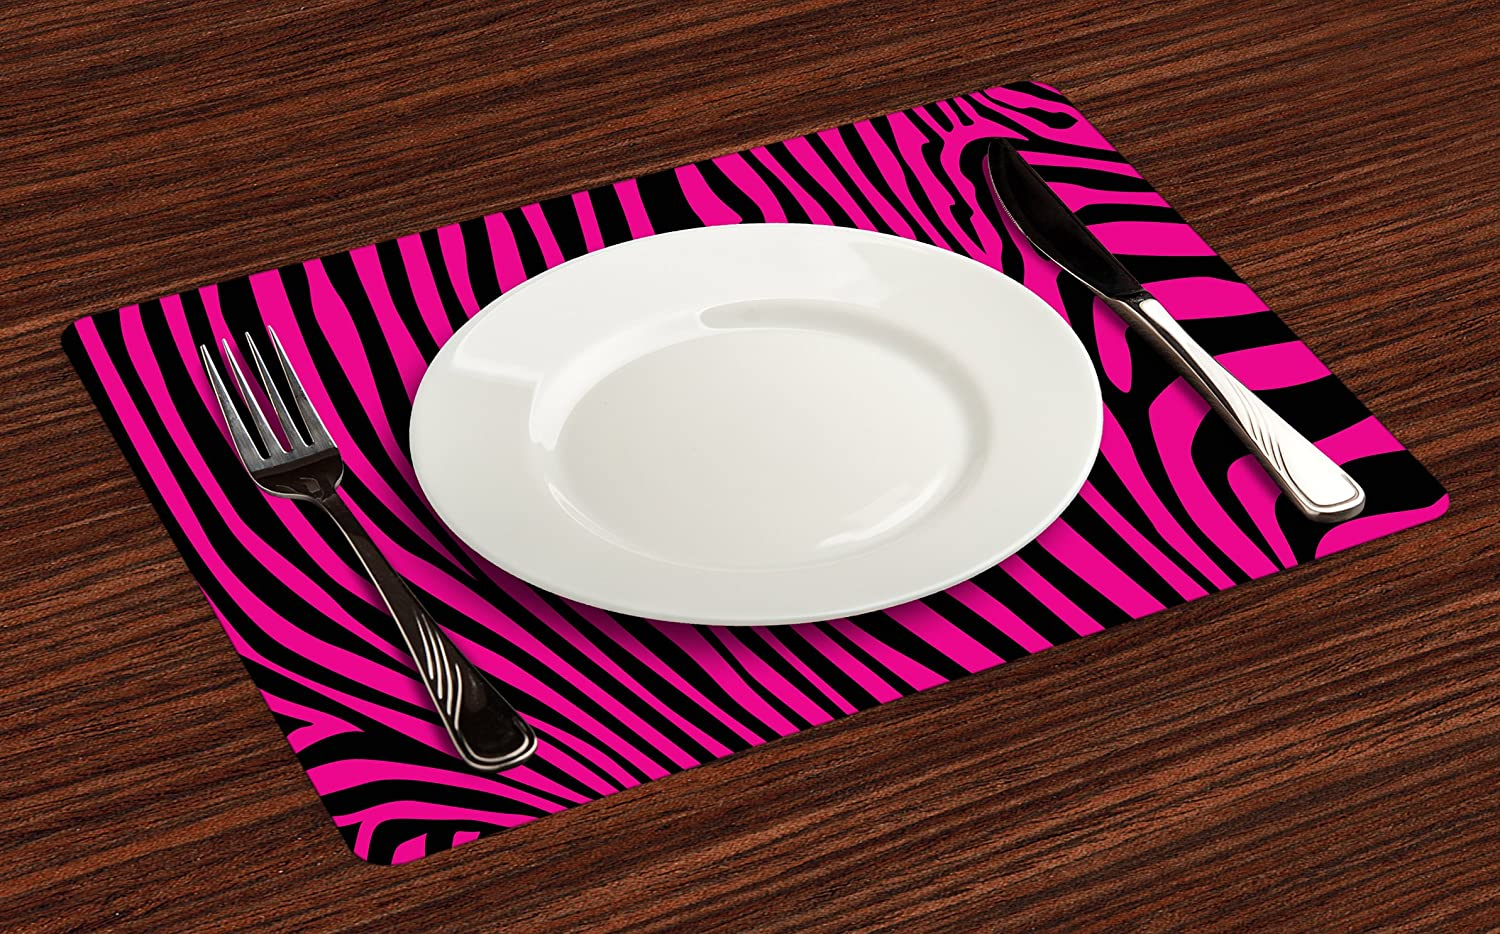 Watercolor Zebra Placemats - Zebras In Blue by littlearrowdesign Animal Print Trend Cloth Placemats by Spoonflower Set of 4